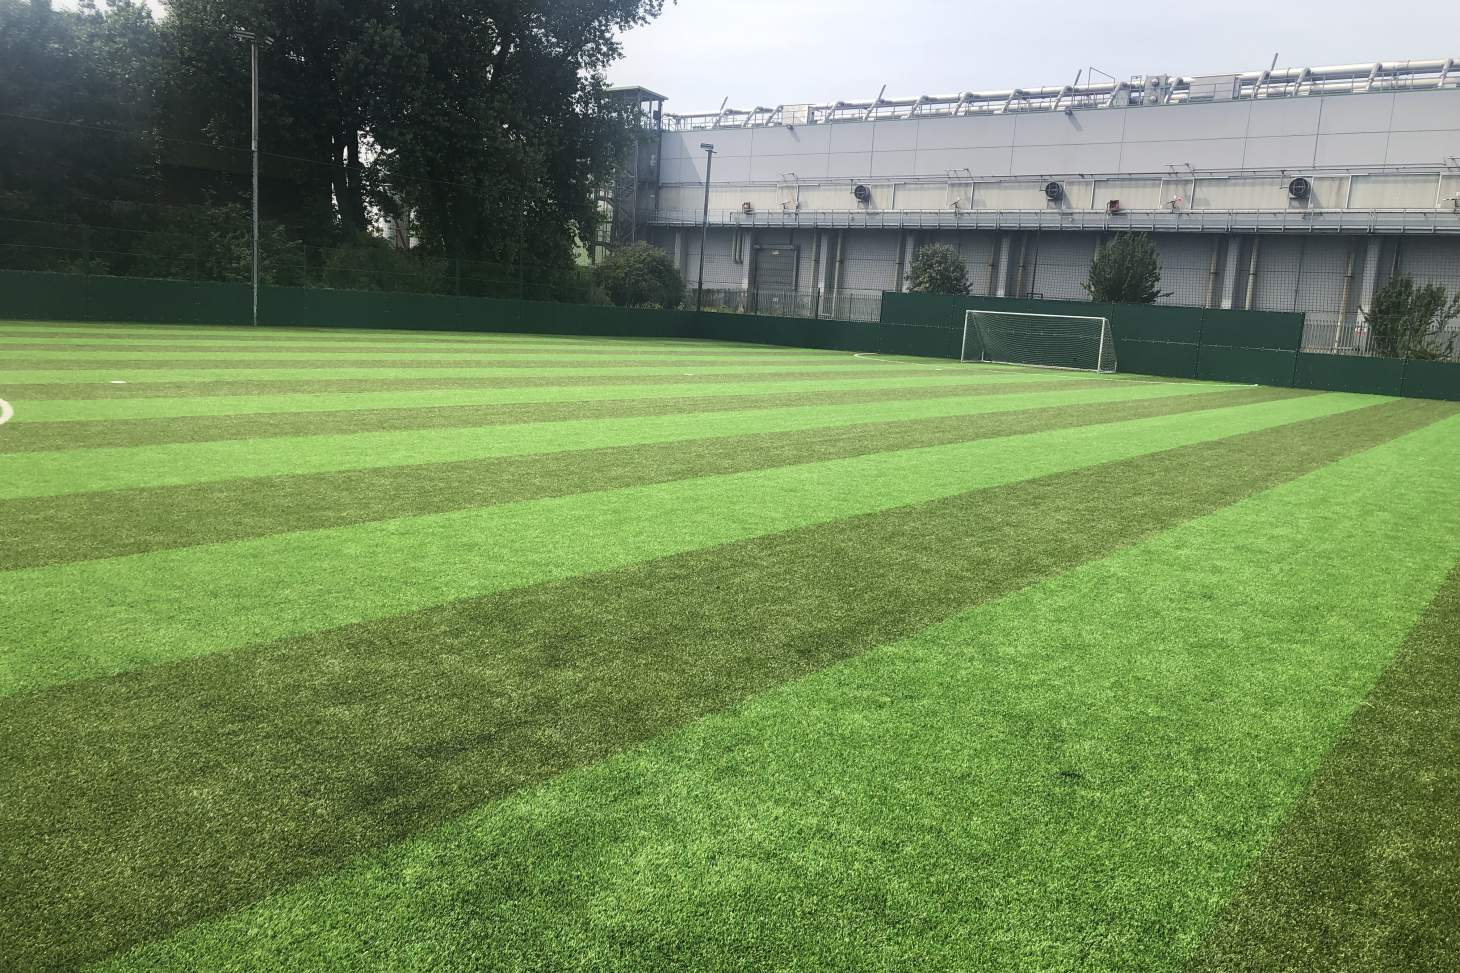 Powerleague Newham 7 a side | 3G Astroturf football pitch